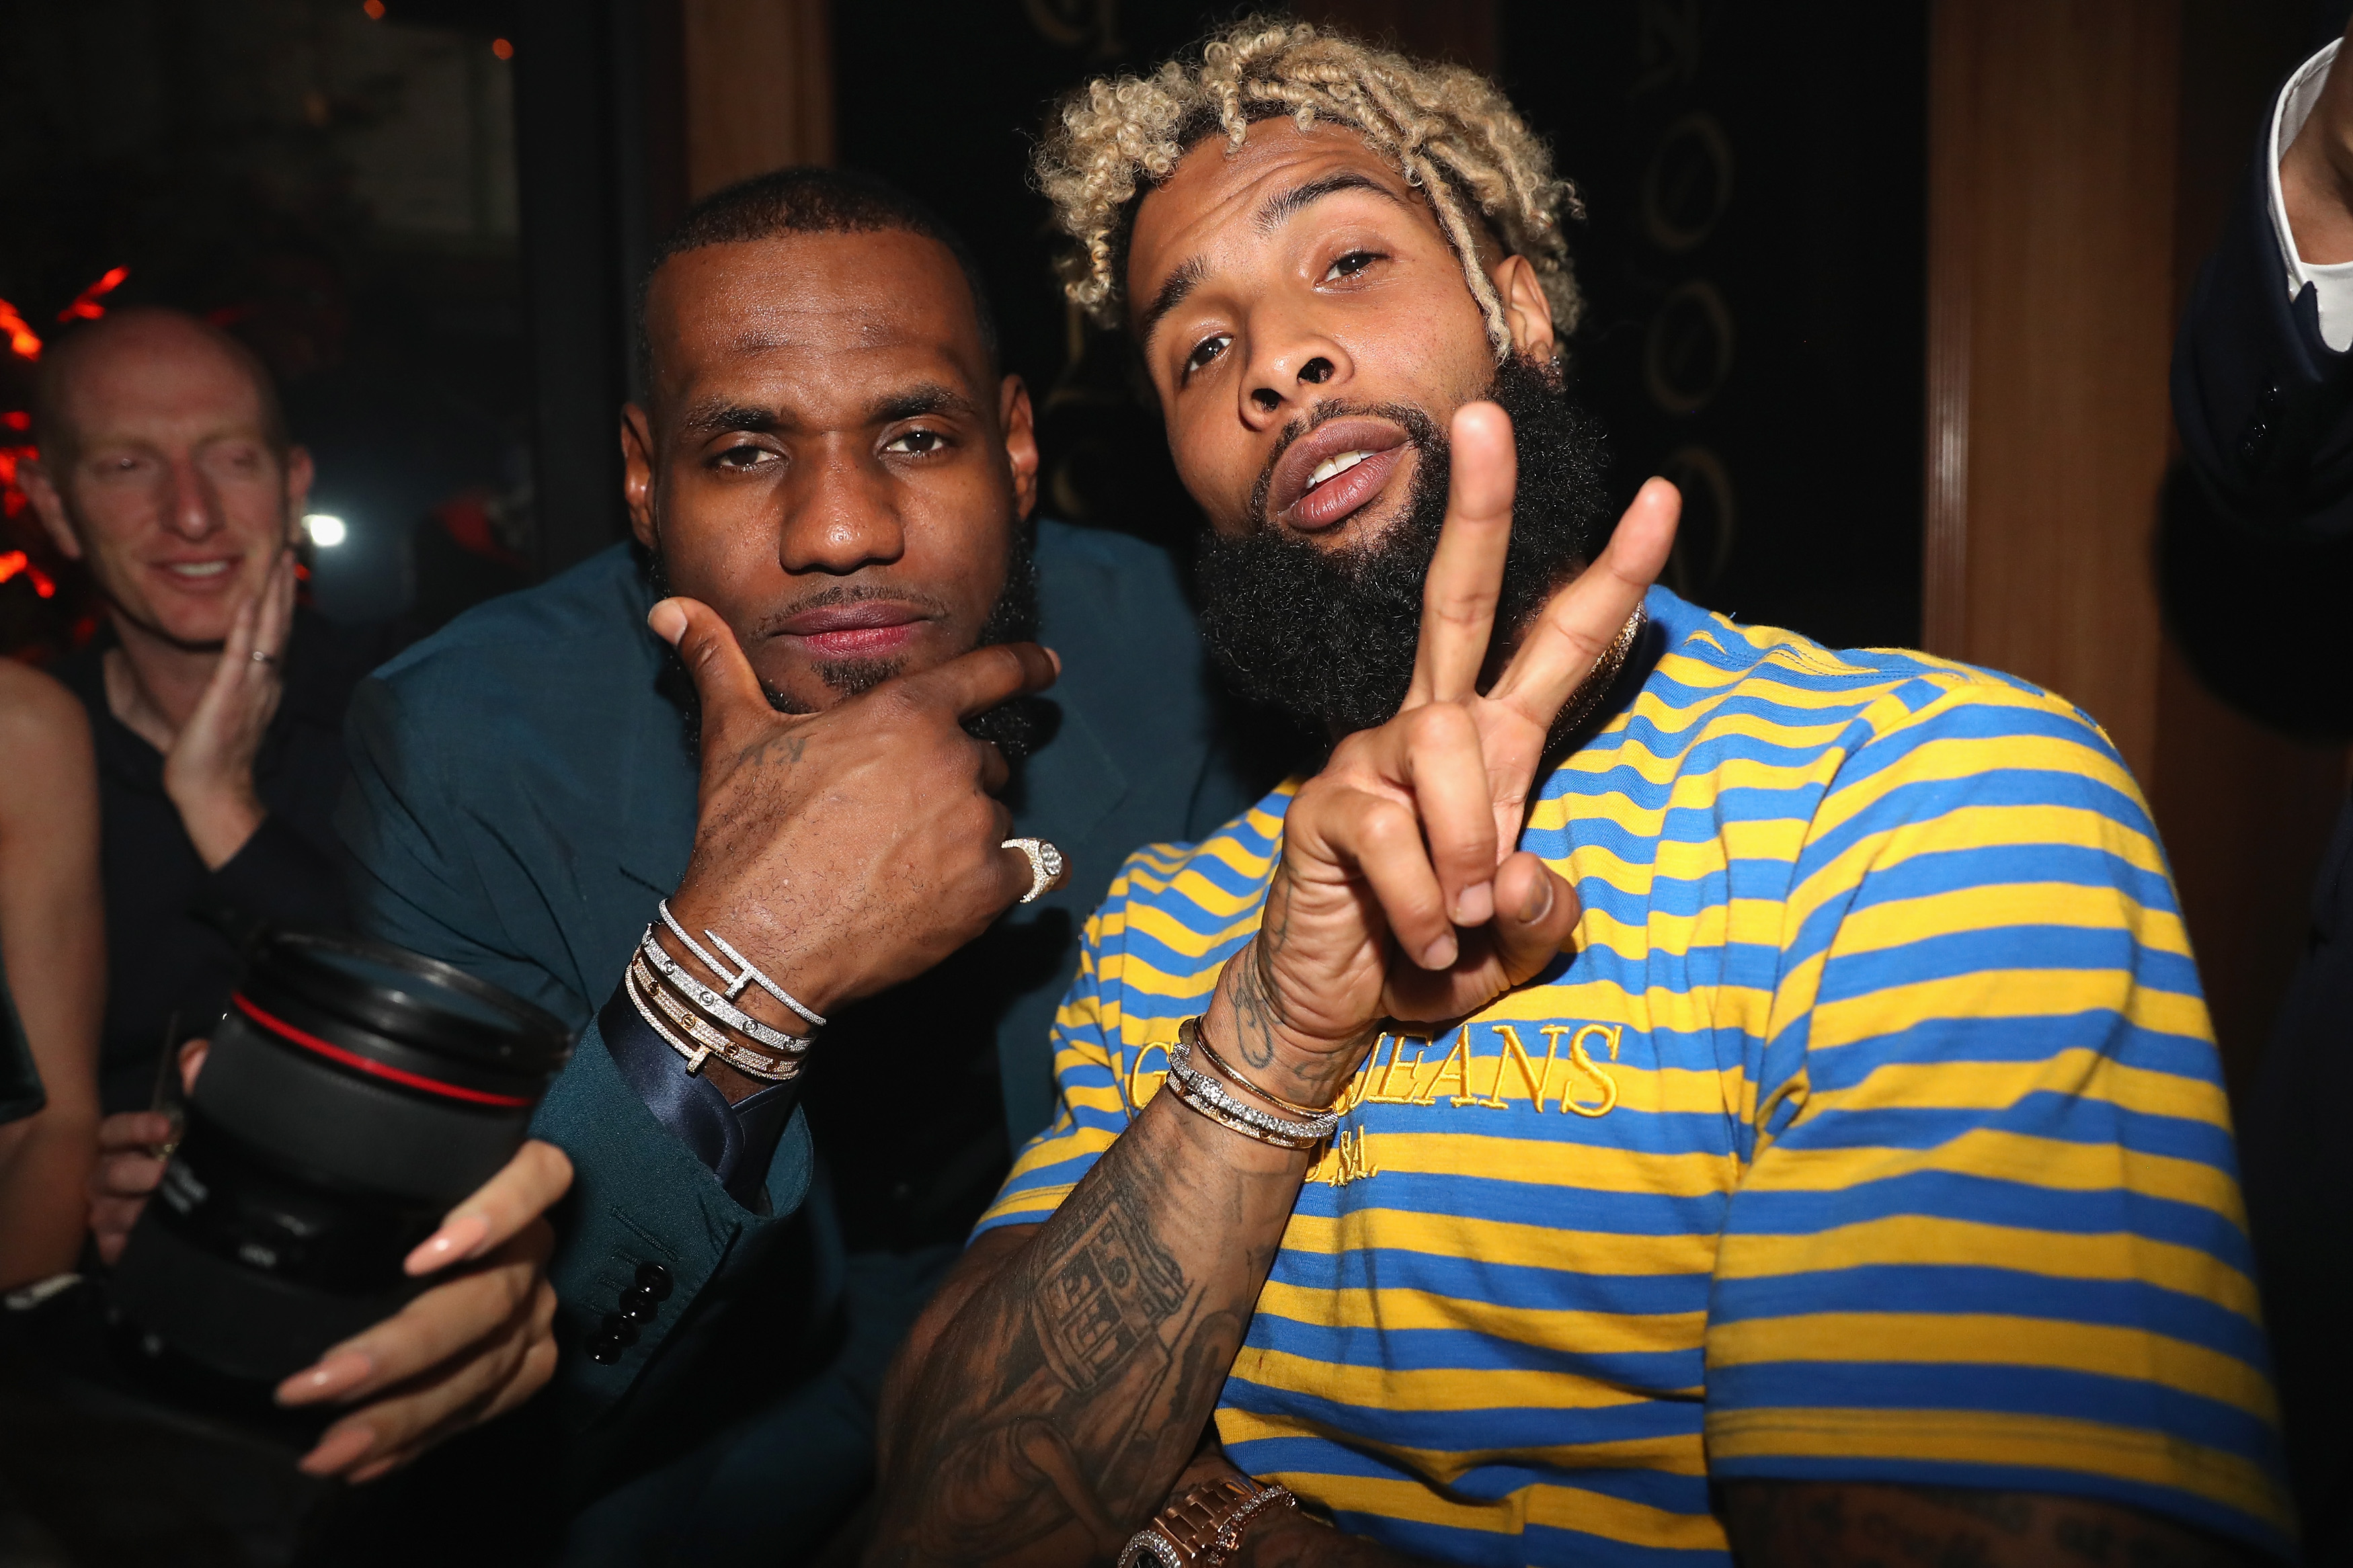 wholesale dealer 18c9d e40cb Odell Beckham, Jr. is the style icon the NFL needs - CNN Style